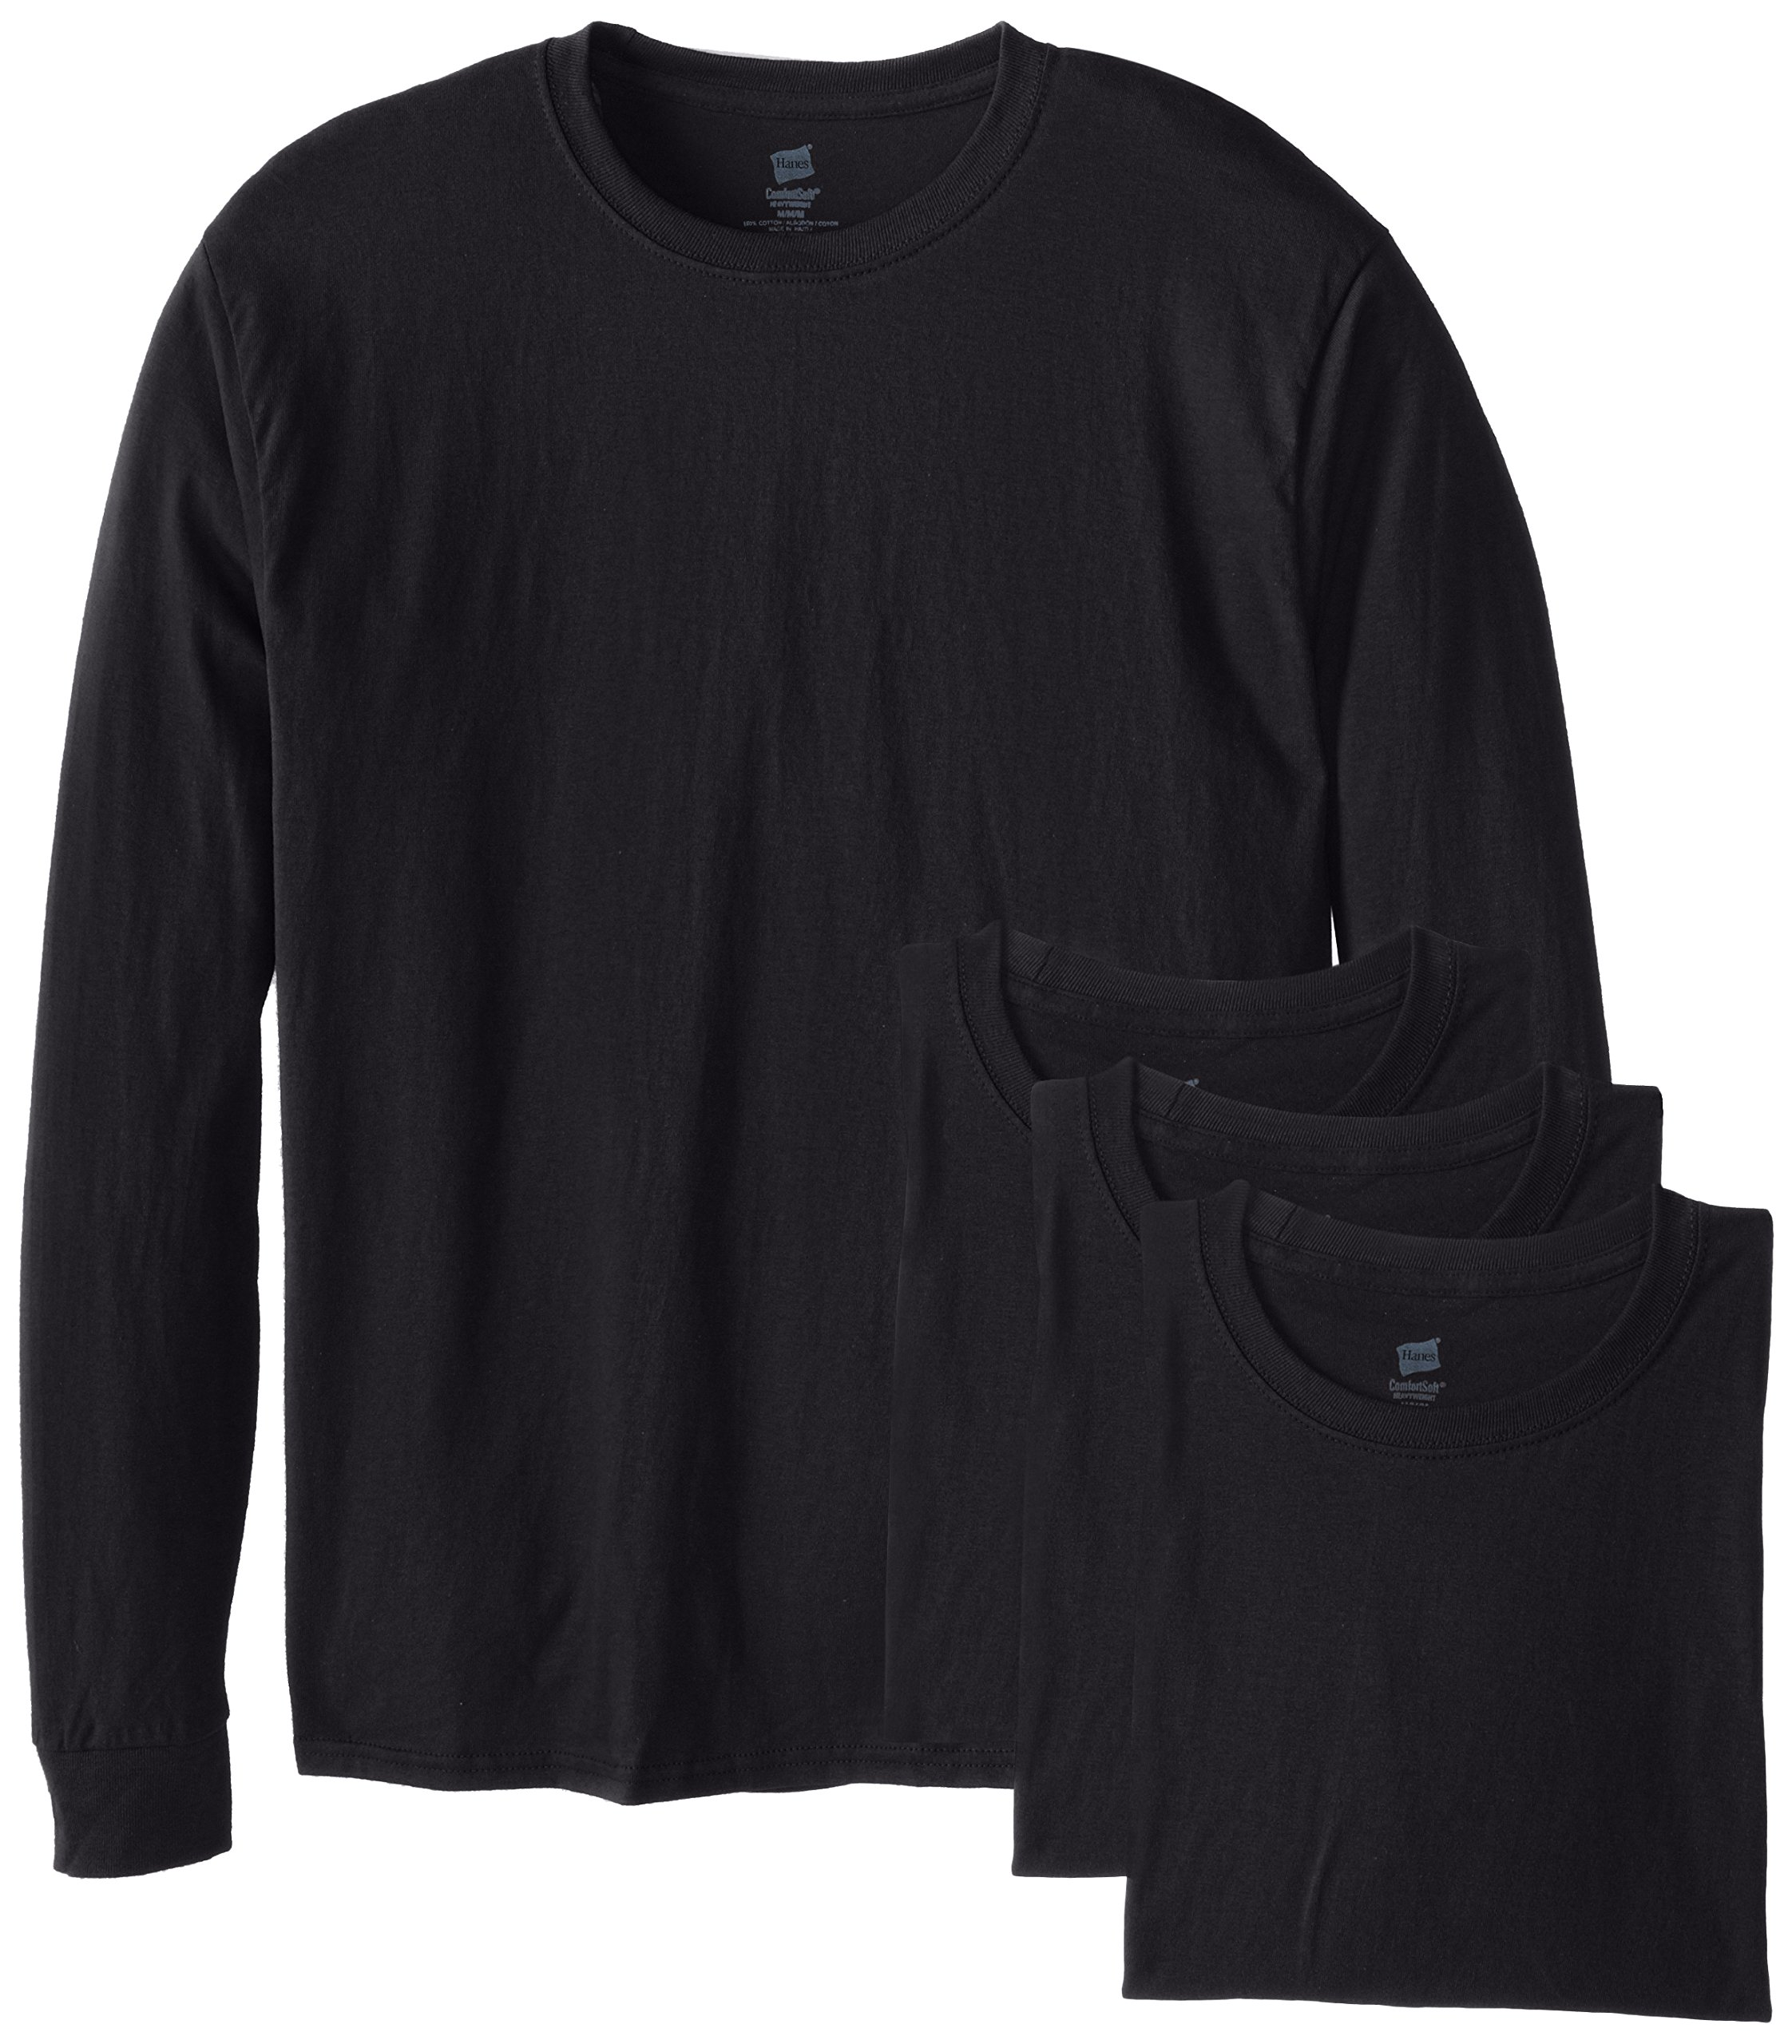 Hanes Men's 4 Pack Long Sleeve Comfortsoft T-Shirt, Black, 3X-Large by Hanes